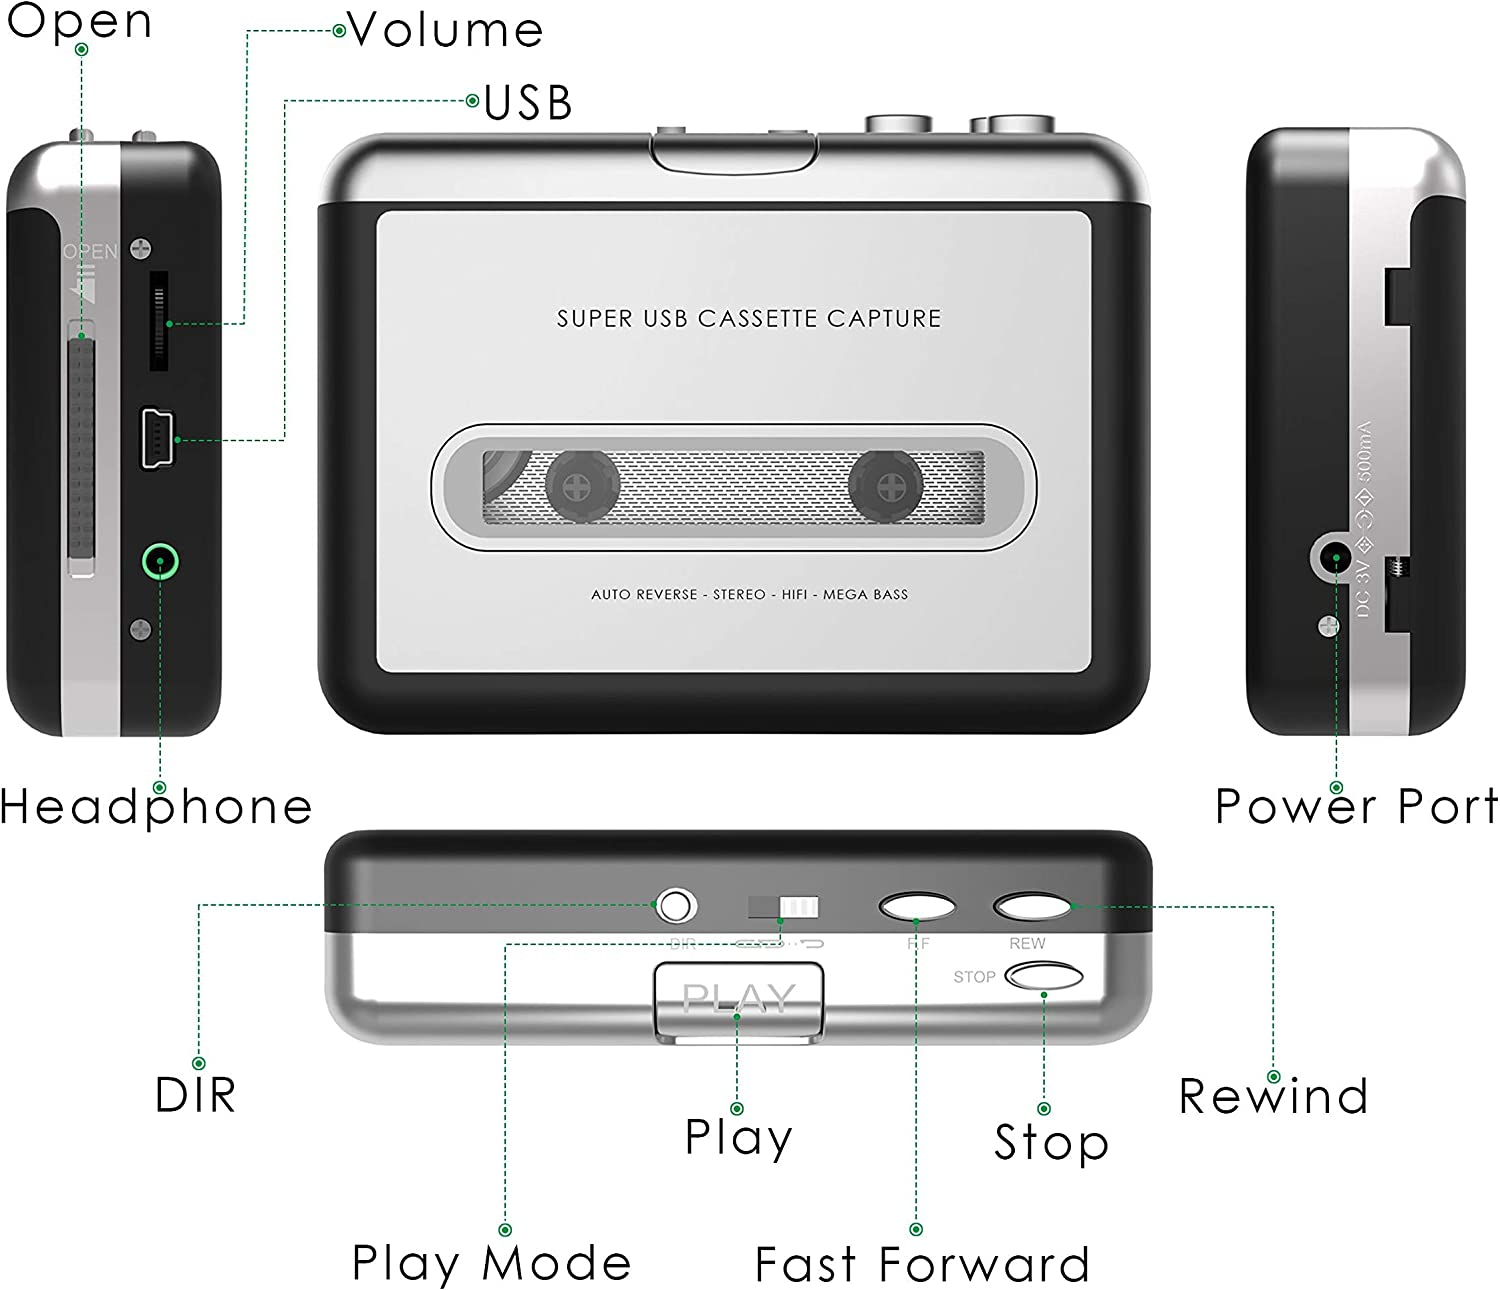 Updated Cassette to MP3 Converter USB Cassette Player from Tapes to MP3 Digital Files for Laptop PC and Mac with Headphones from Tapes to Mp3 New